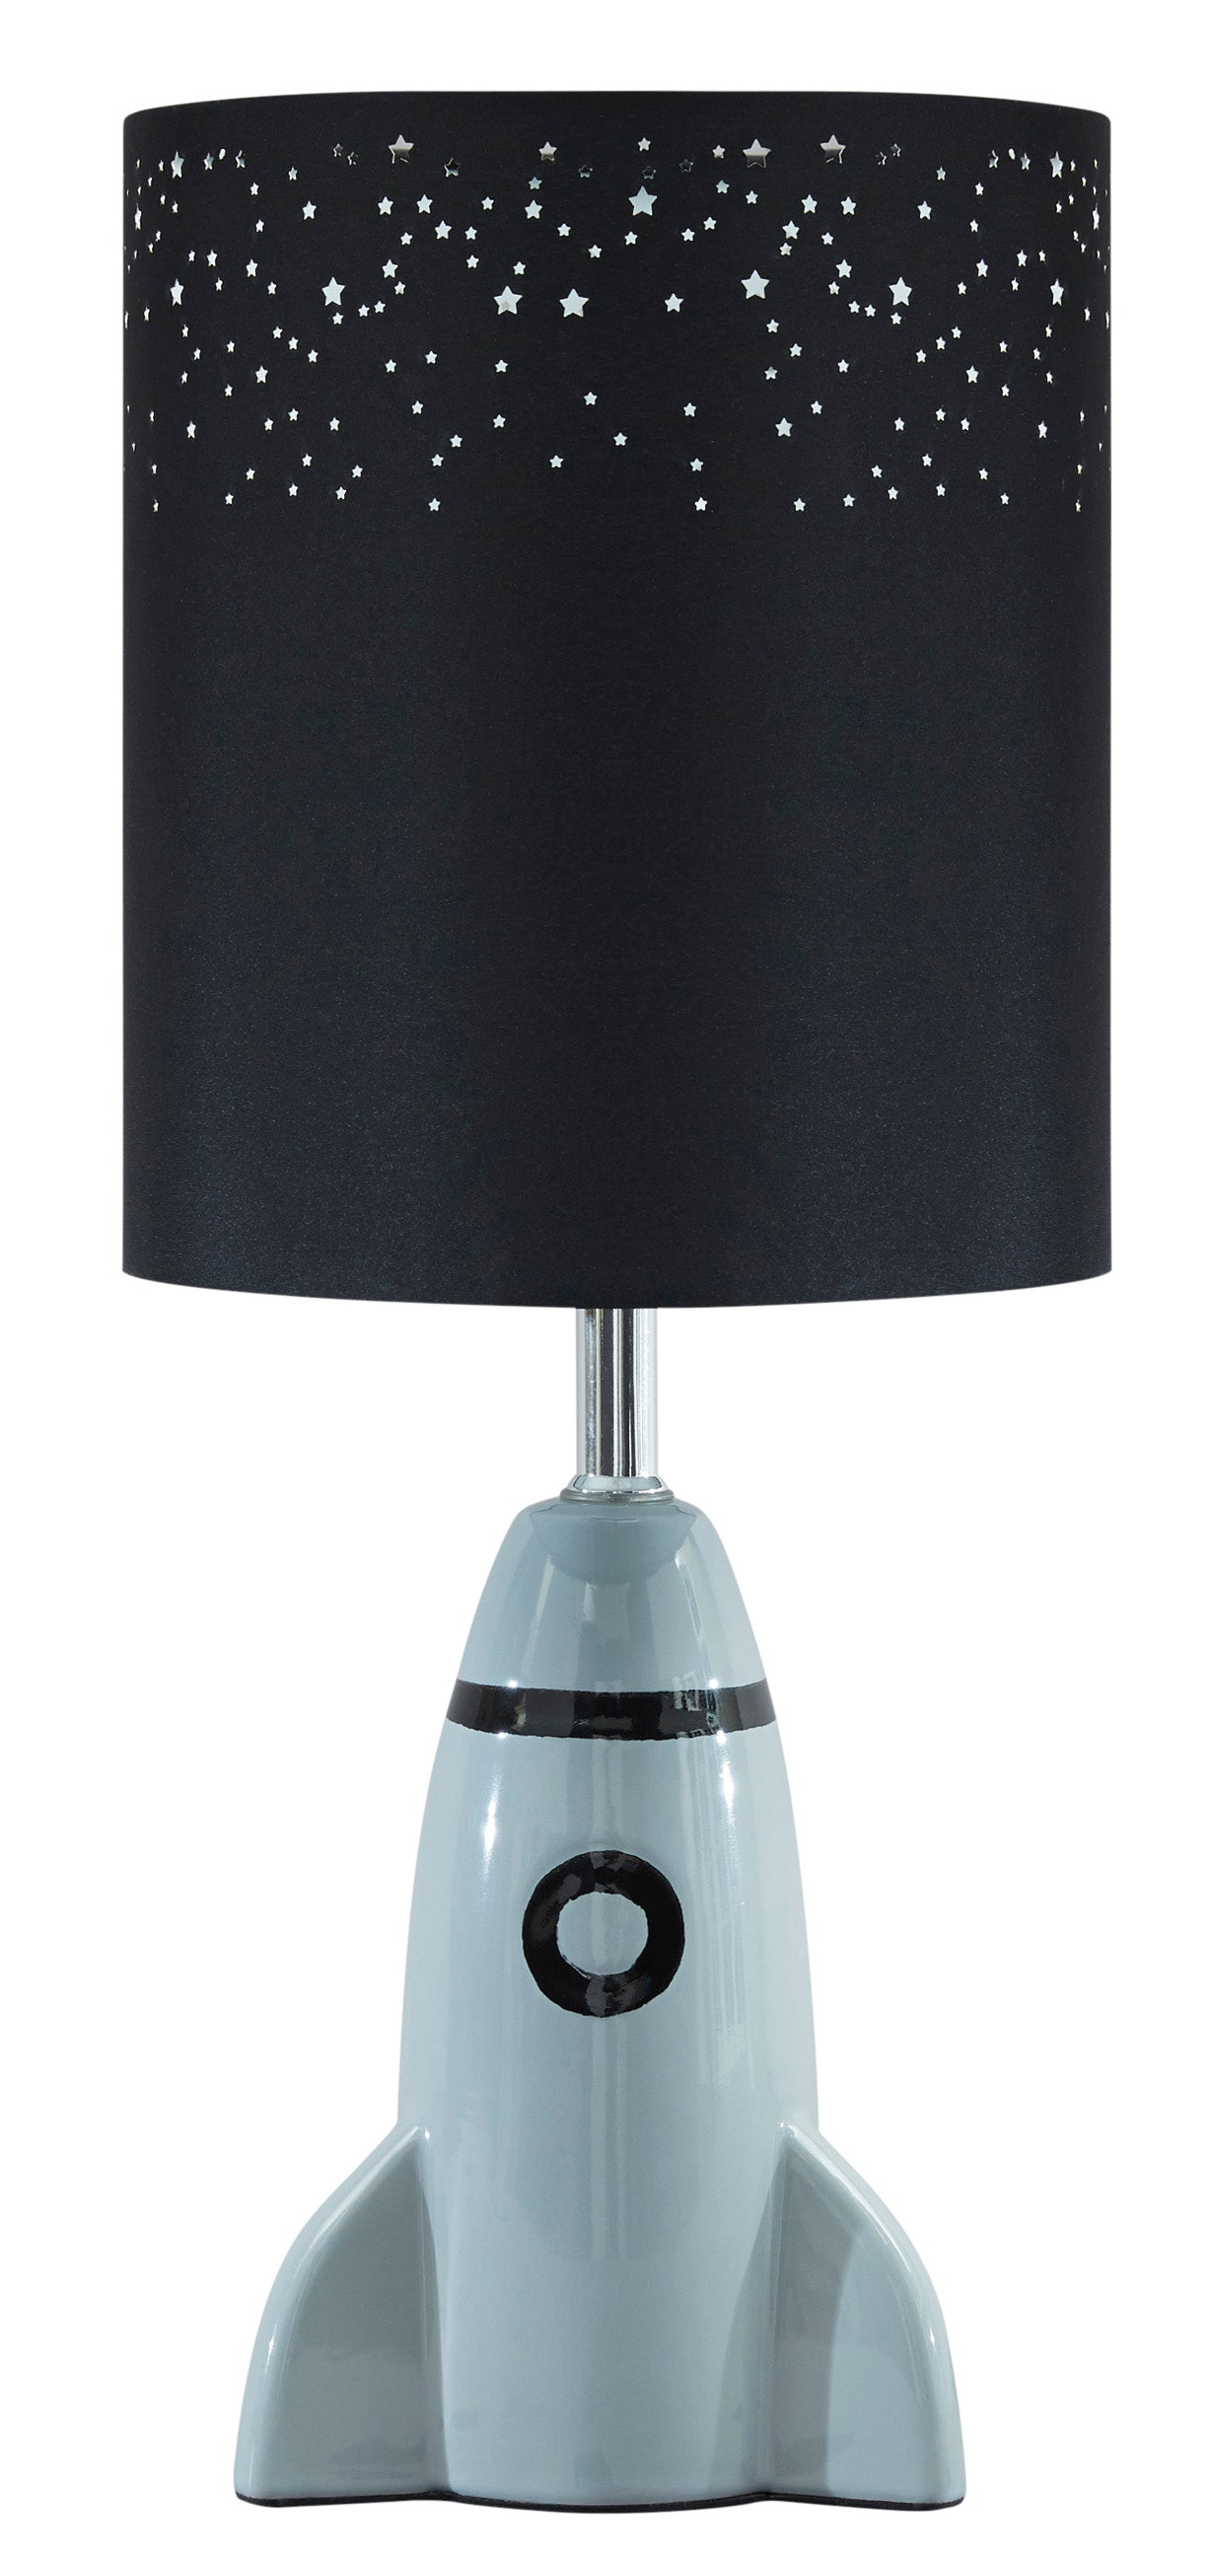 Signature Design By Ashley Cale Gray And Black Ceramic Table Lamp